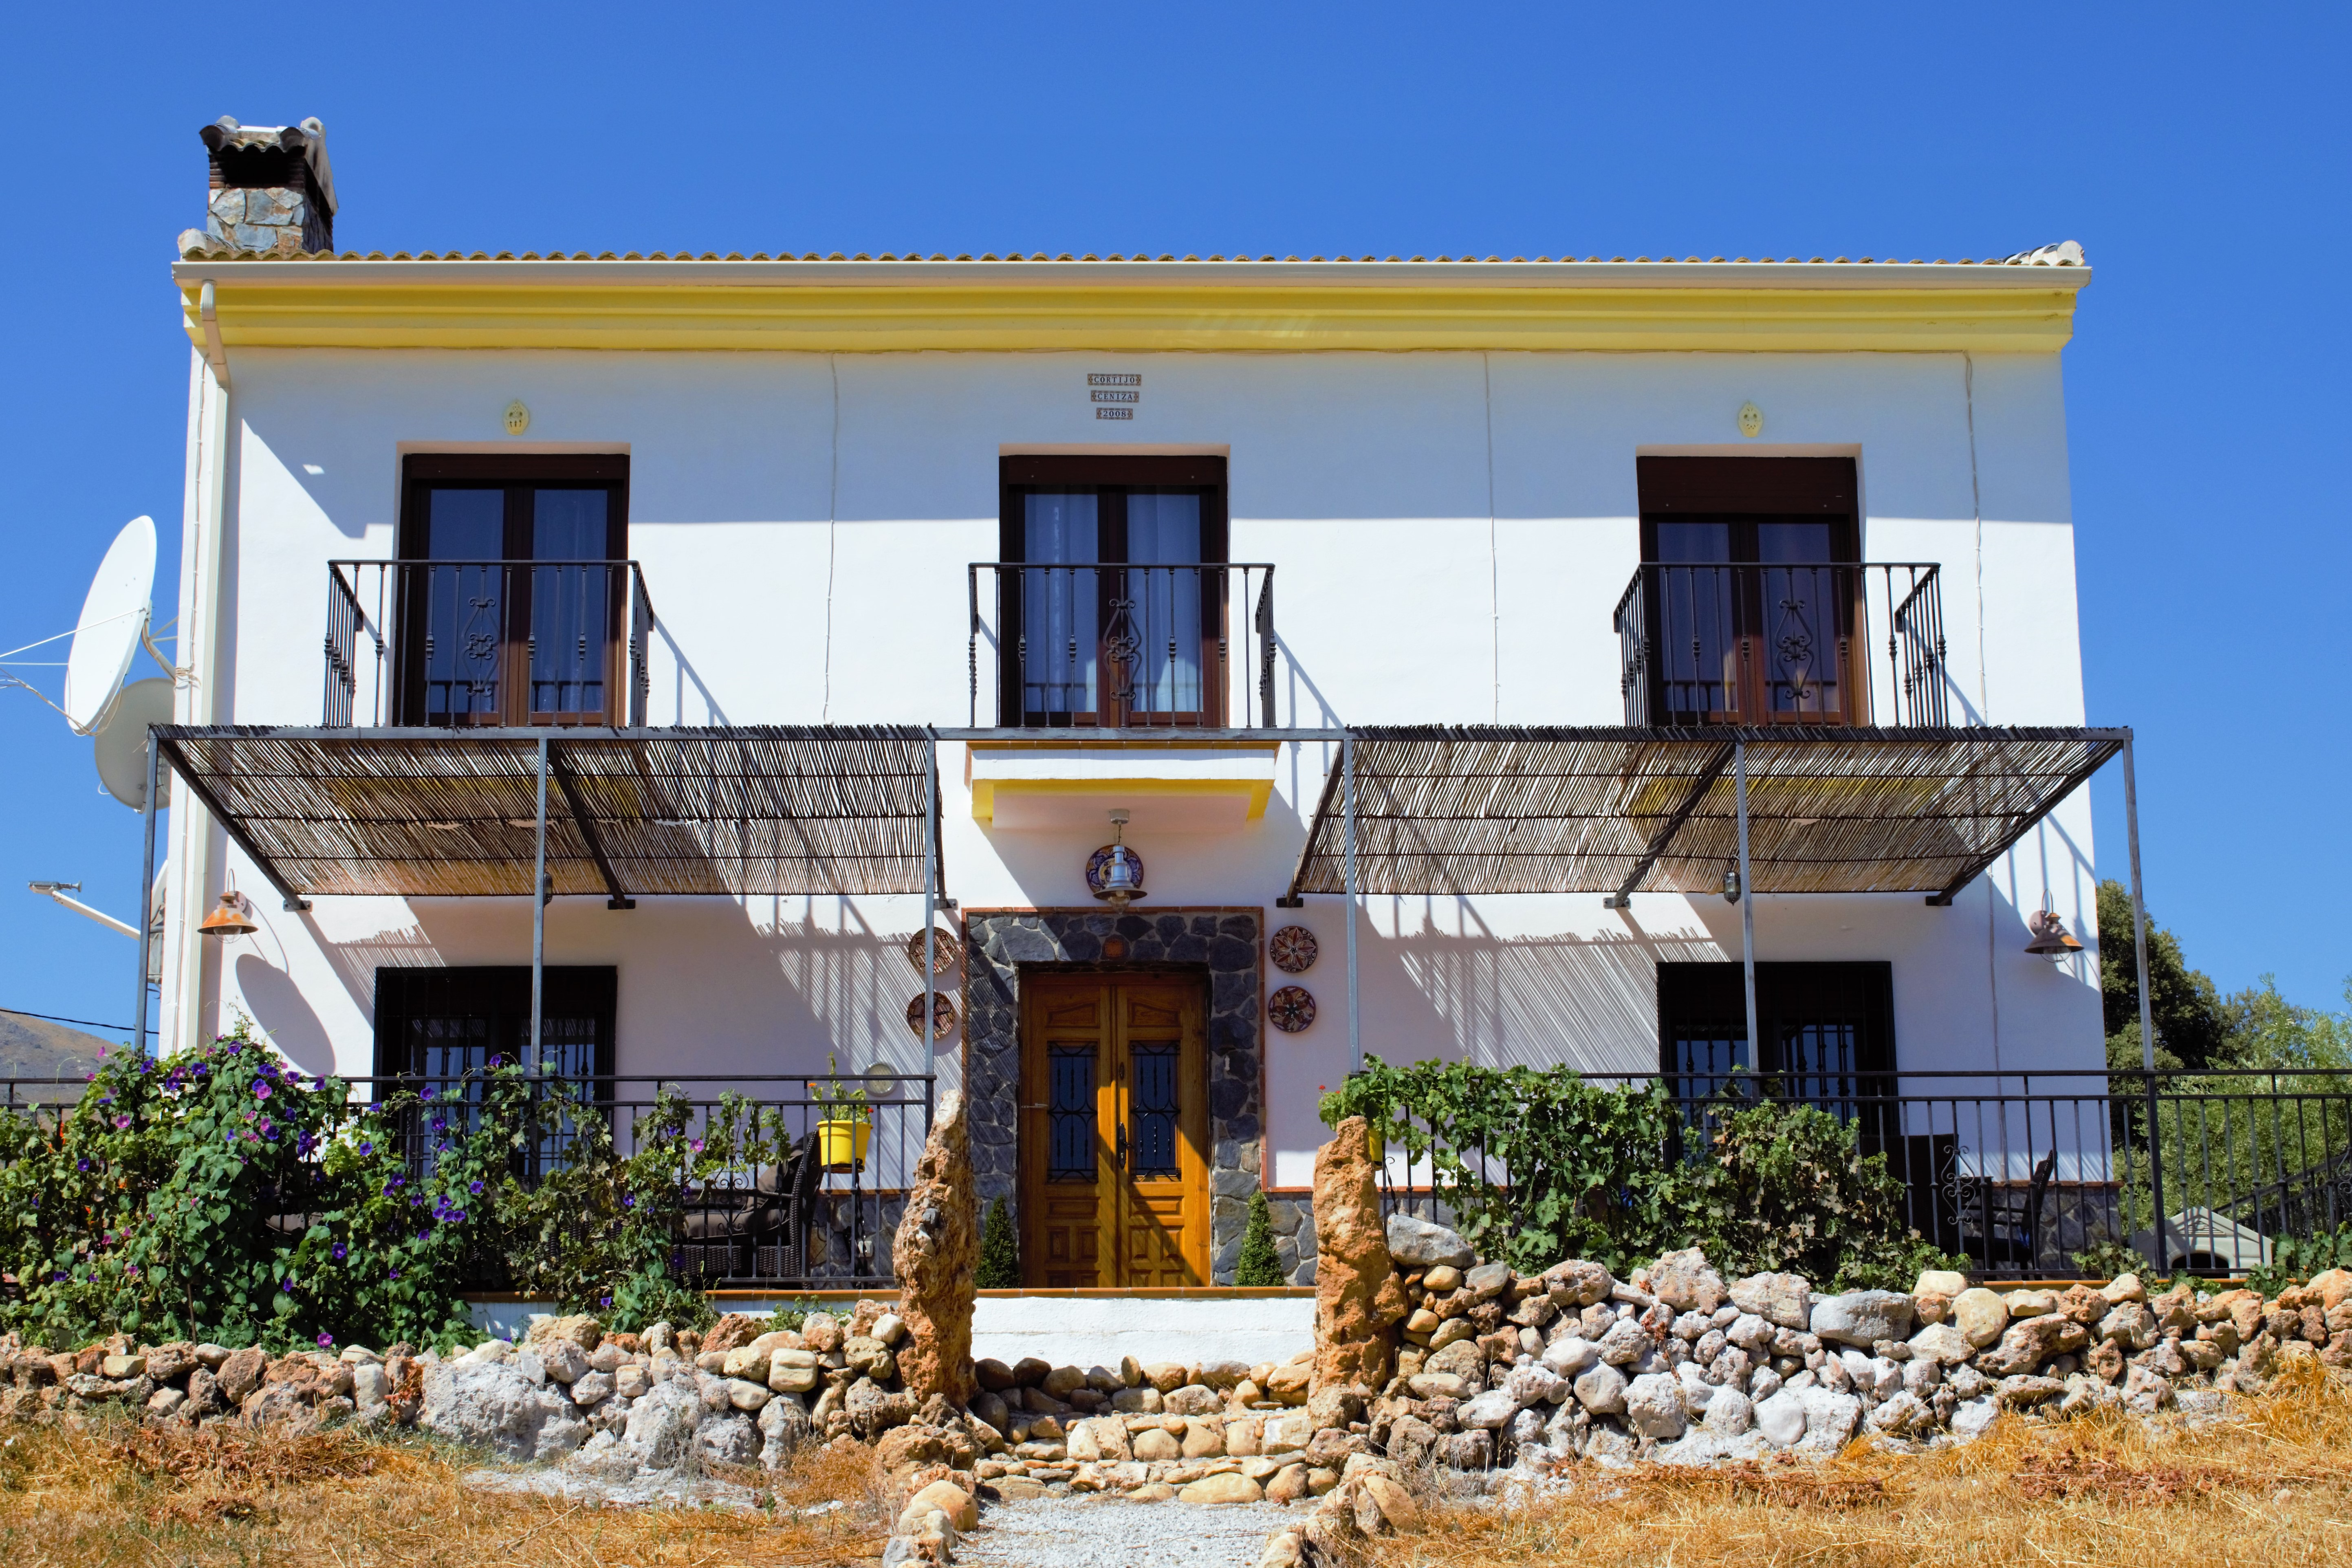 Property in Portugal - prices have fallen 7